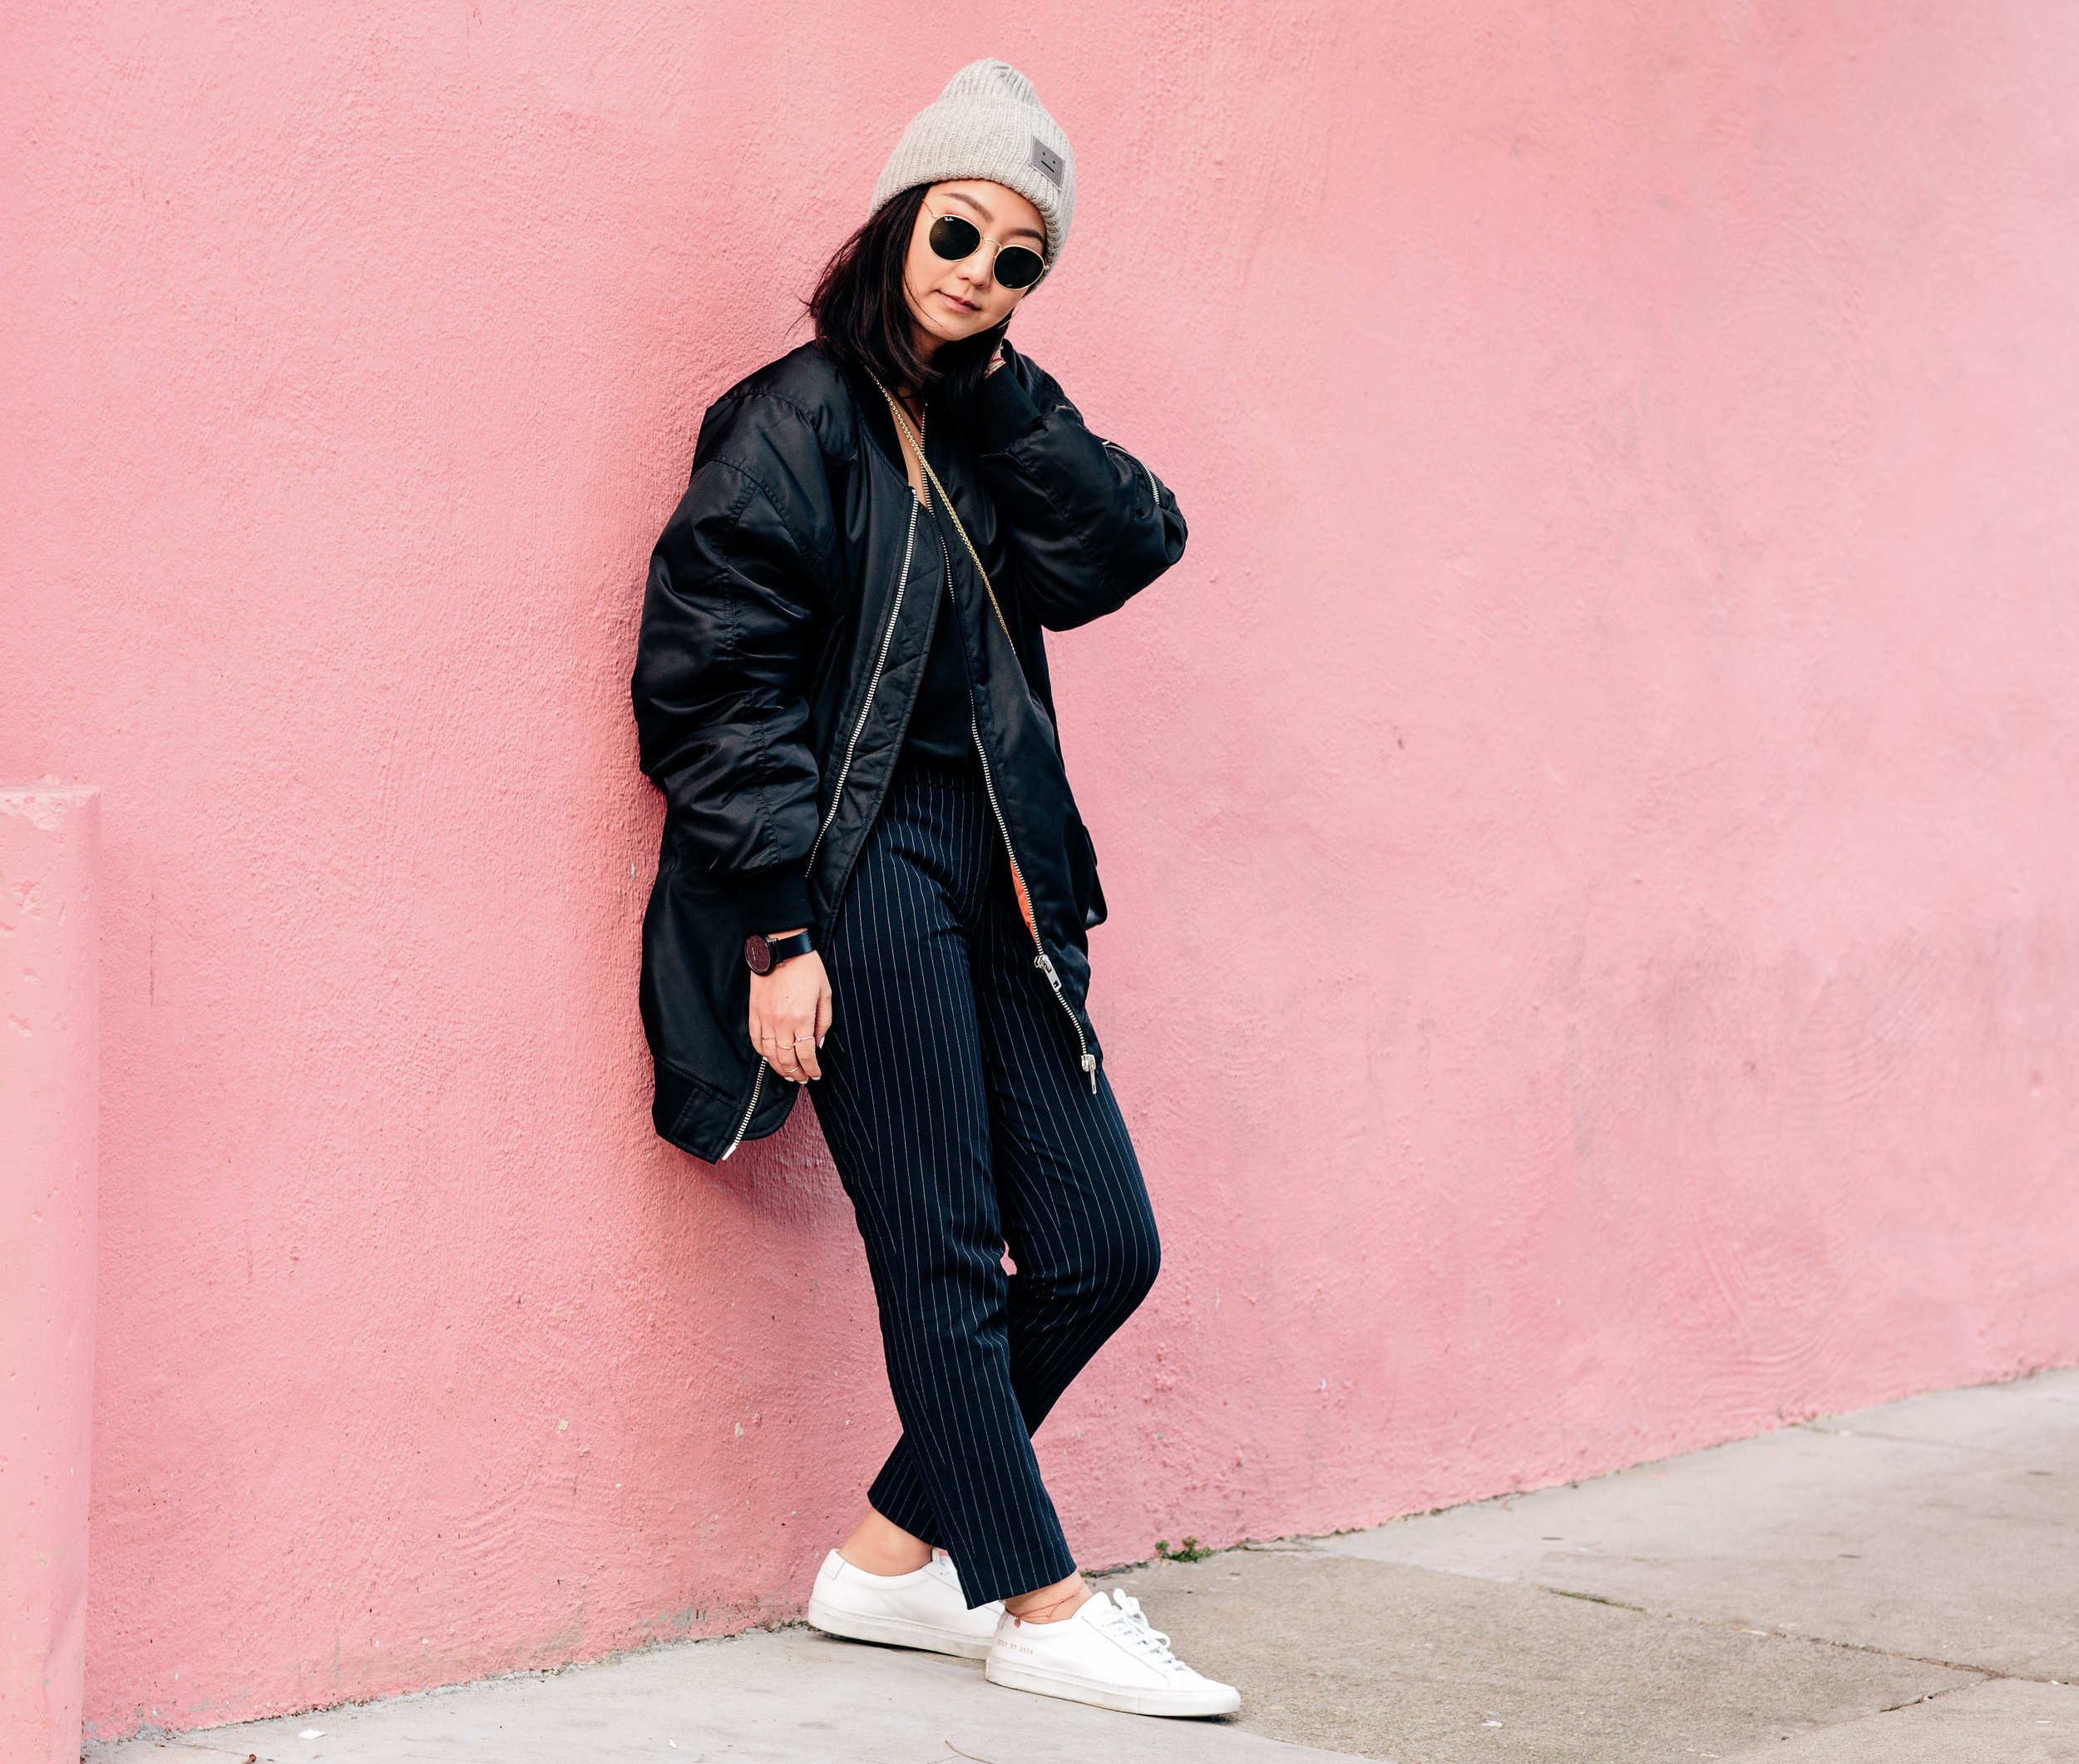 ACNE STUDIOS   pansy beanie  / ZARA   bomber jacket  / H&M   pinstripe pants  / COMMON PROJECTS   sneakers  /RAY-BAN   round sunglasses  / FURLA   bag    PHOTOS BY  JEN CHRISTO PHOTOGRAPHY